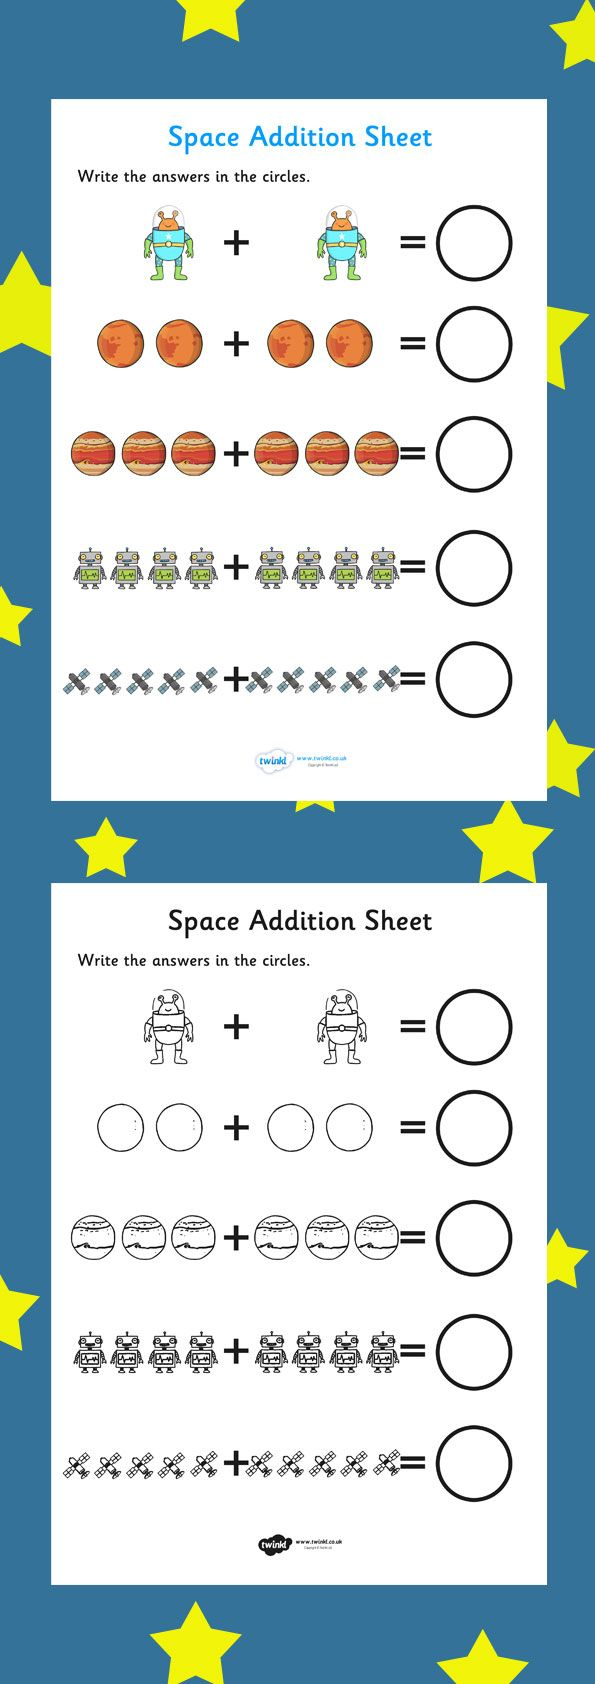 Worksheet Summer Themed Math Worksheets Carlos Lomas Worksheet For